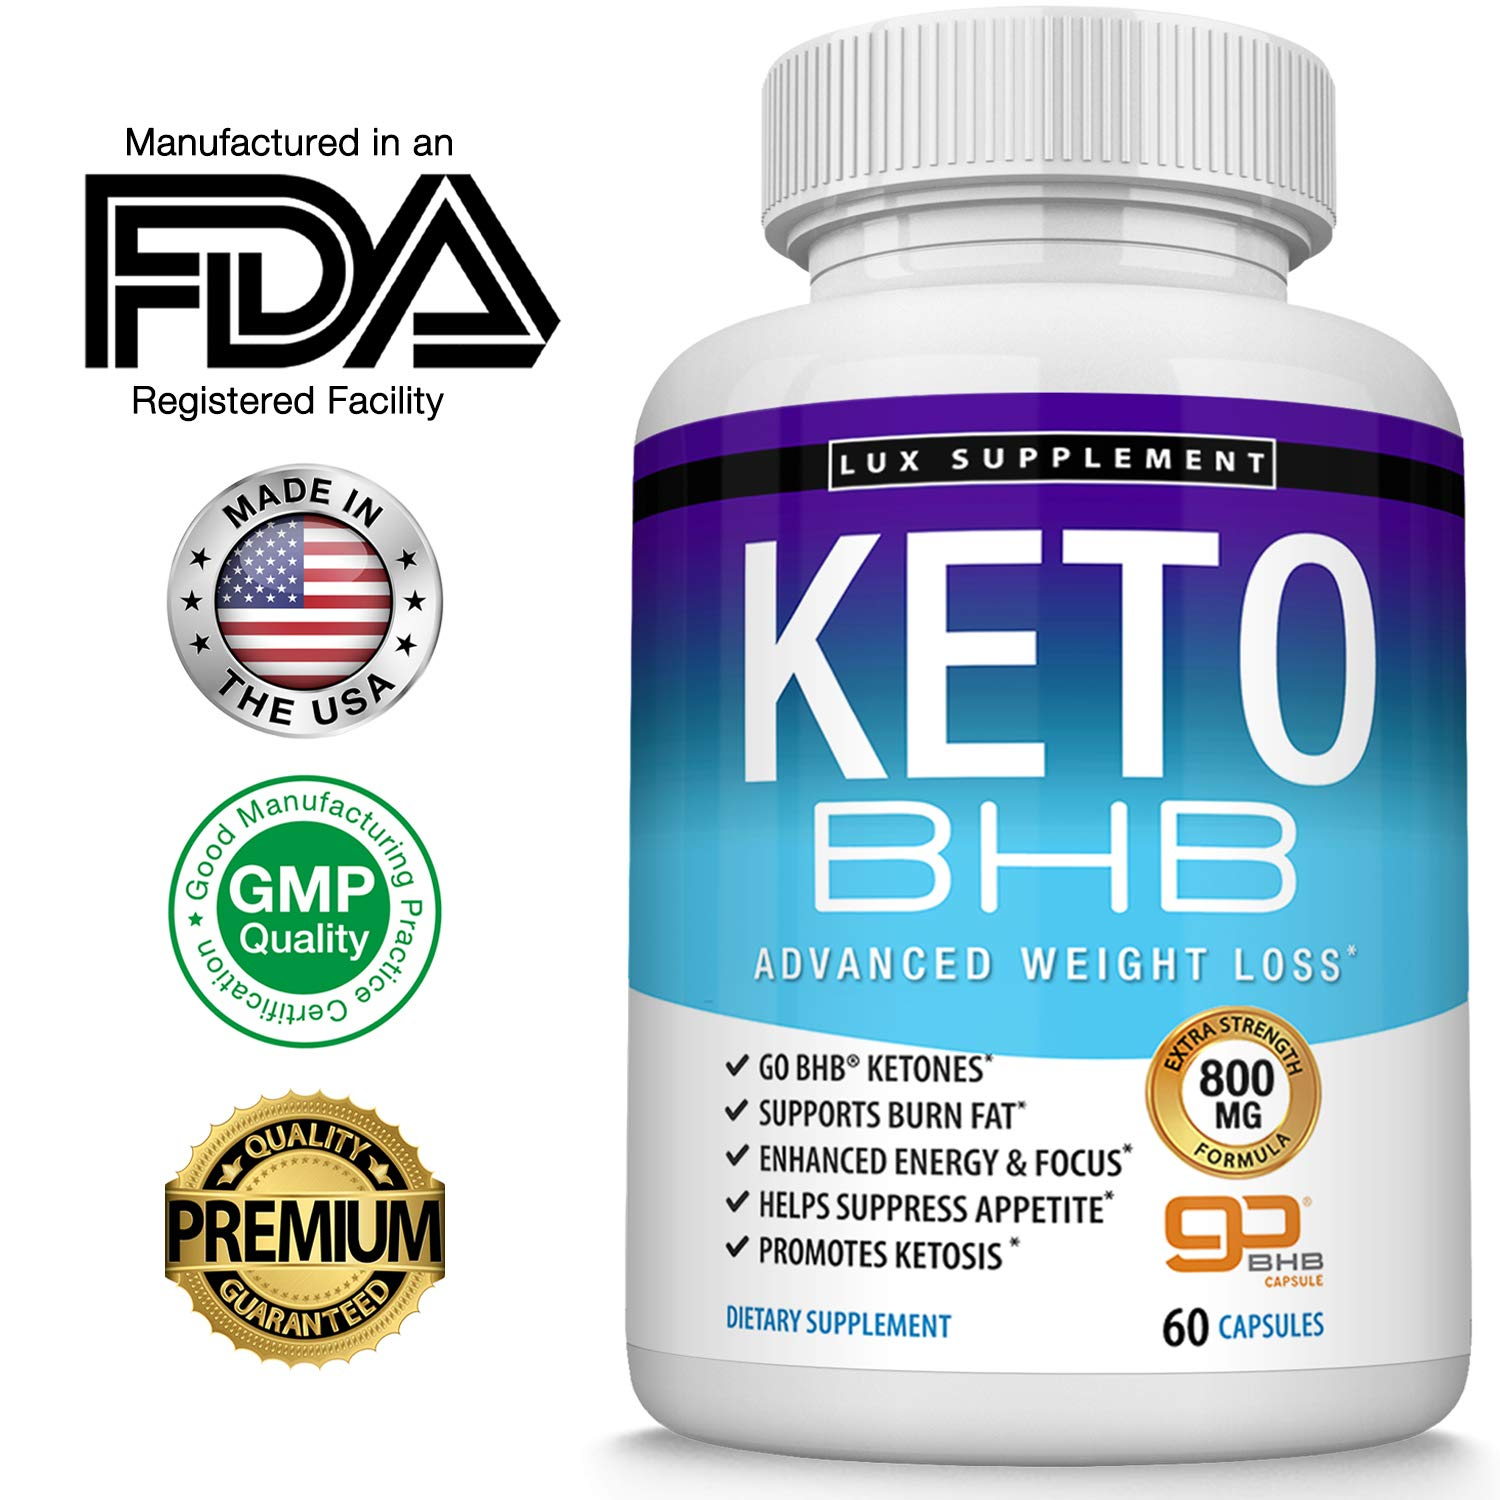 Keto Pills Advanced Weight Loss BHB Salt - Natural Ketosis Fat Burner Using Ketone & Ketogenic Diet, Boost Energy While Burning Fat, Fast & Effective Perfect for Men Women, 60 Capsules, Lux Supplement by Lux Supplement